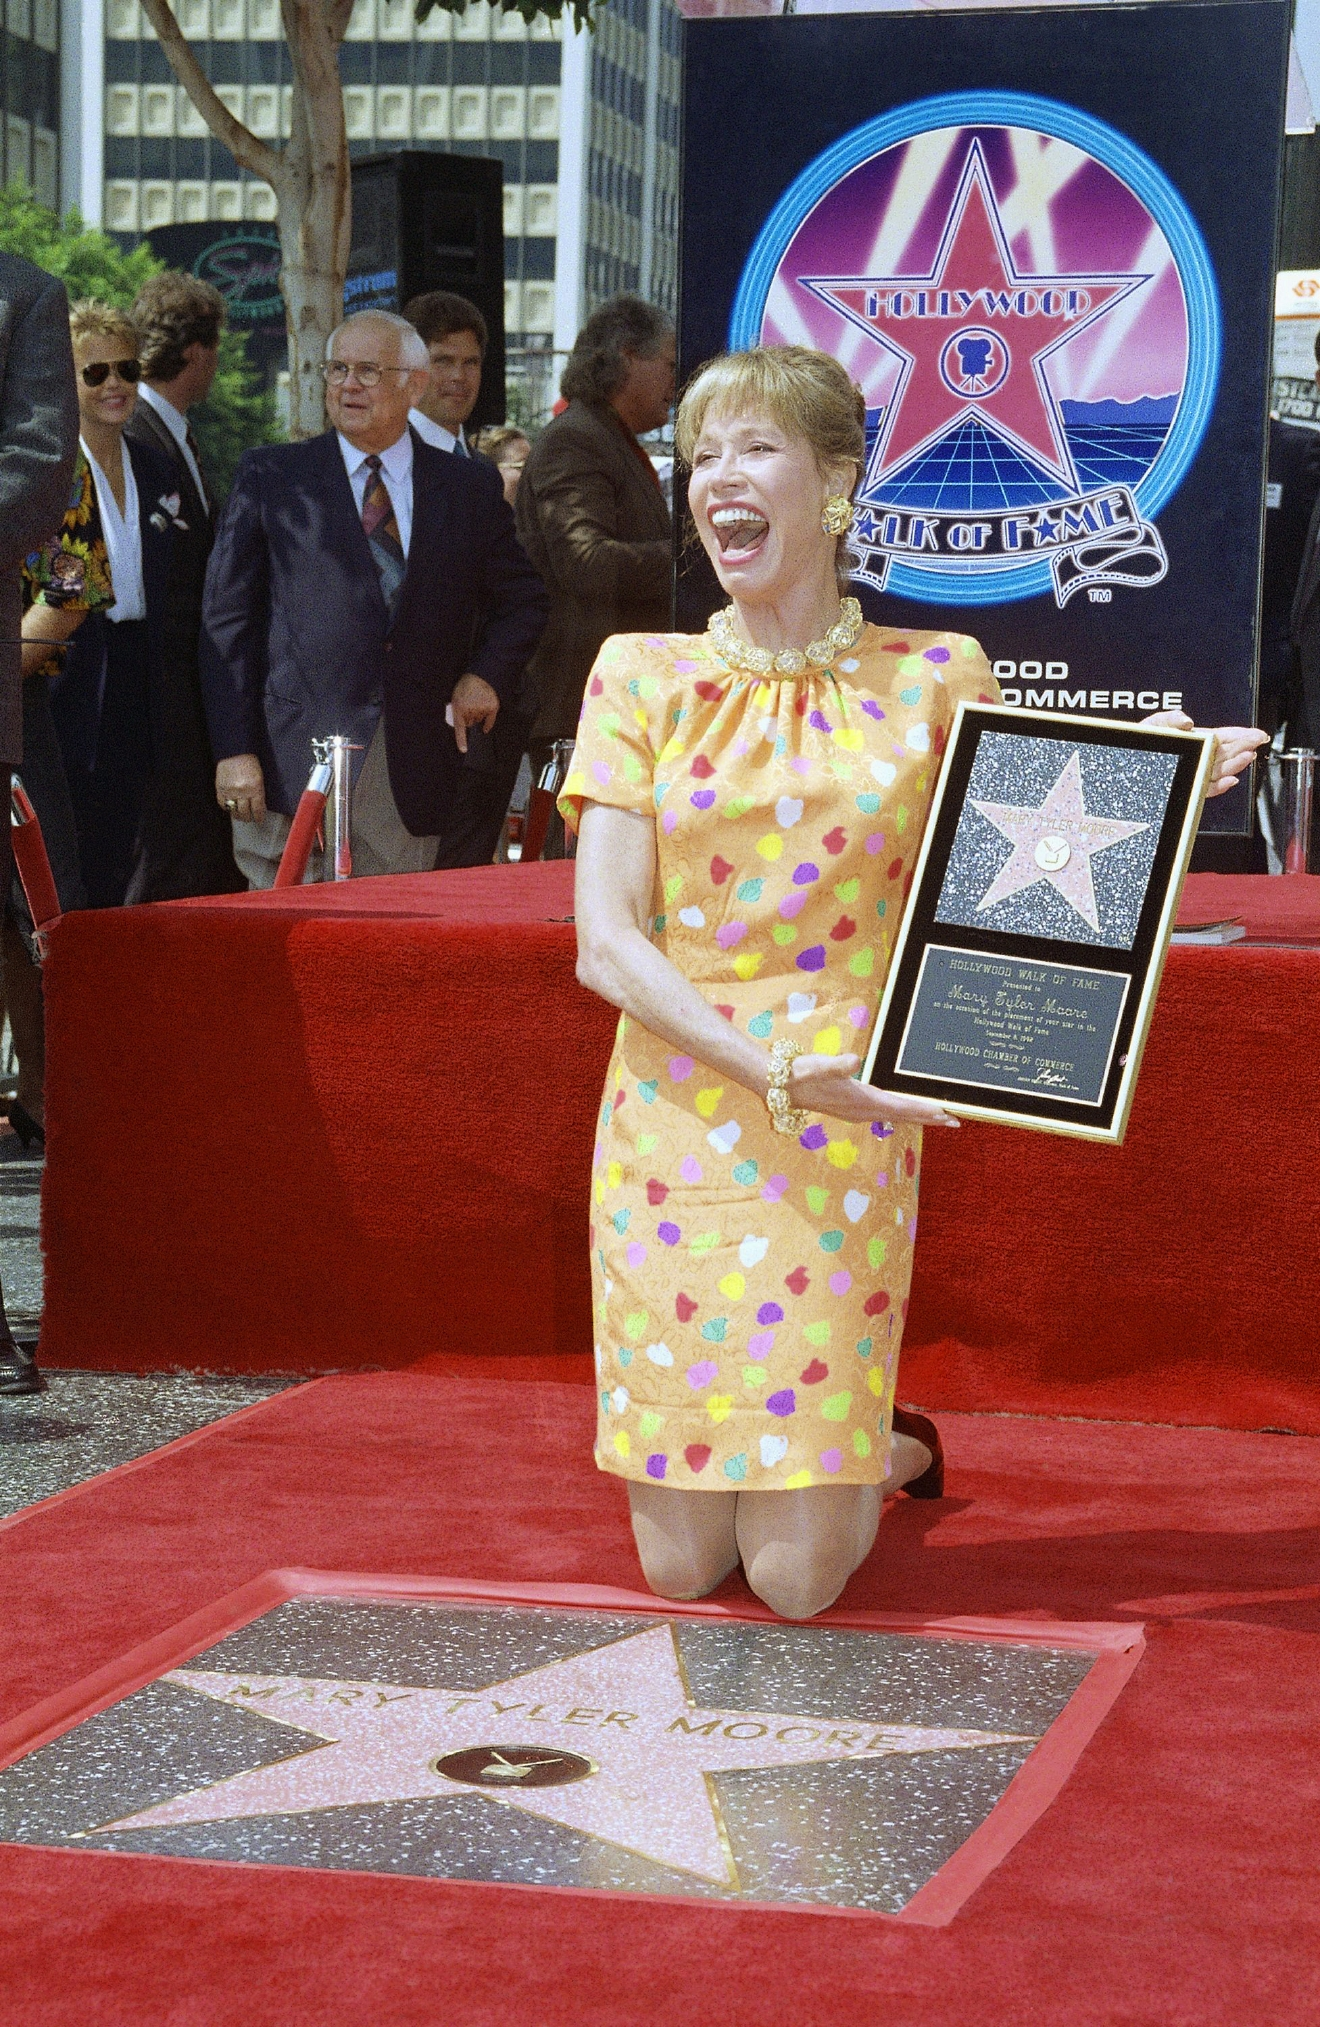 Actress Mary Tyler Moore reacts to fans and media after being honored with her star on Hollywood?s famed walk, Tuesday, Sept. 8, 1992 in Los Angeles. Moore, who has won five Emmy Awards for her work in ?The Dick Van Dyke Show? and ?The Mary Tyler Moore Show?, was given the 1,963rd star on the famous walk. Moore was also nominated for an Academy Award for her role in ?Ordinary People.? (AP Photo/Chris Martinez)